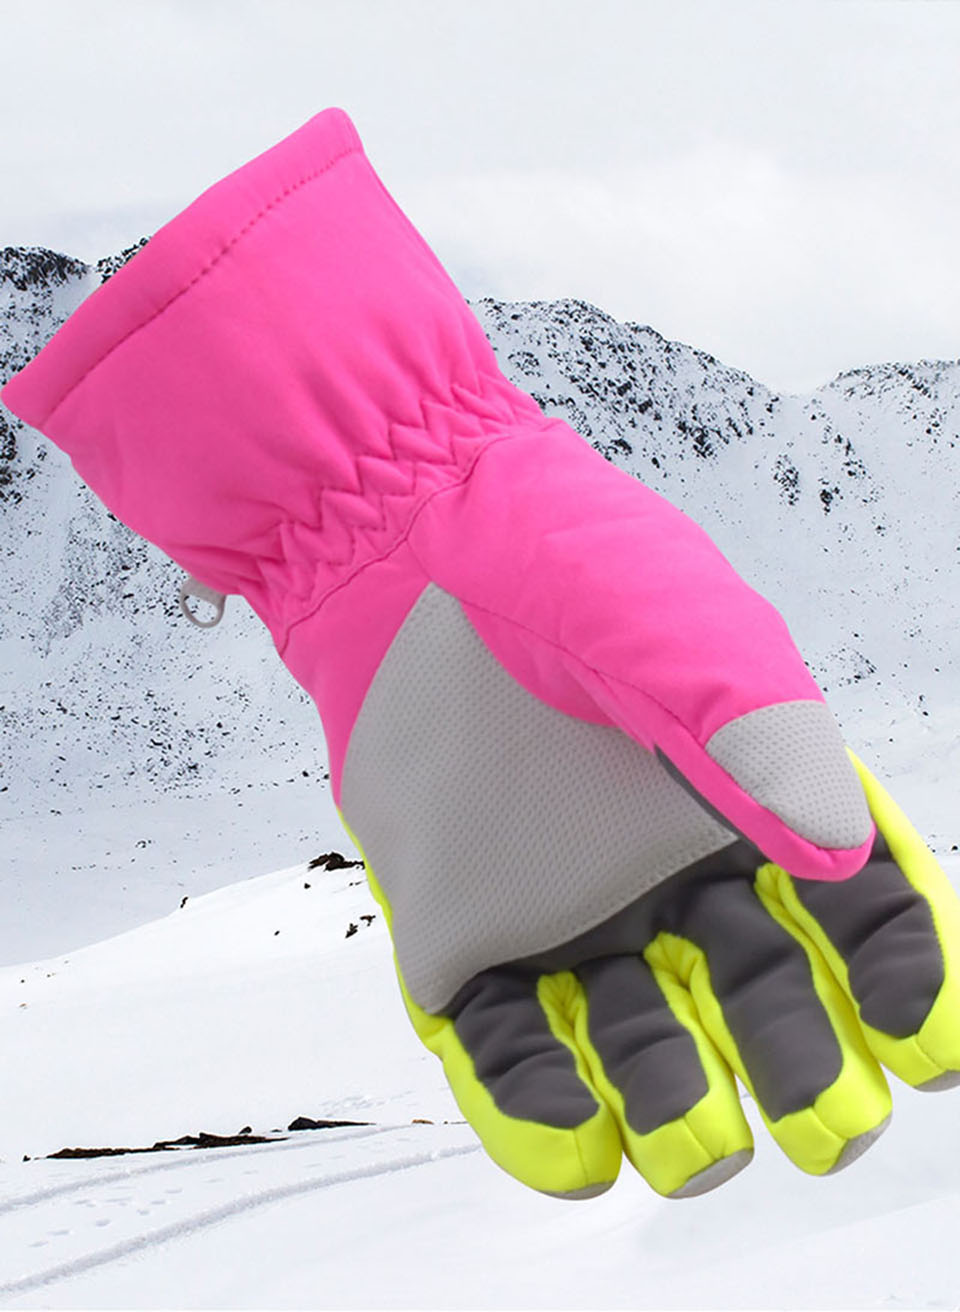 Winter Warm Snowboarding Ski Gloves men women Kids Snow Mittens Waterproof Skiing Breathable Air S/M/L/XL